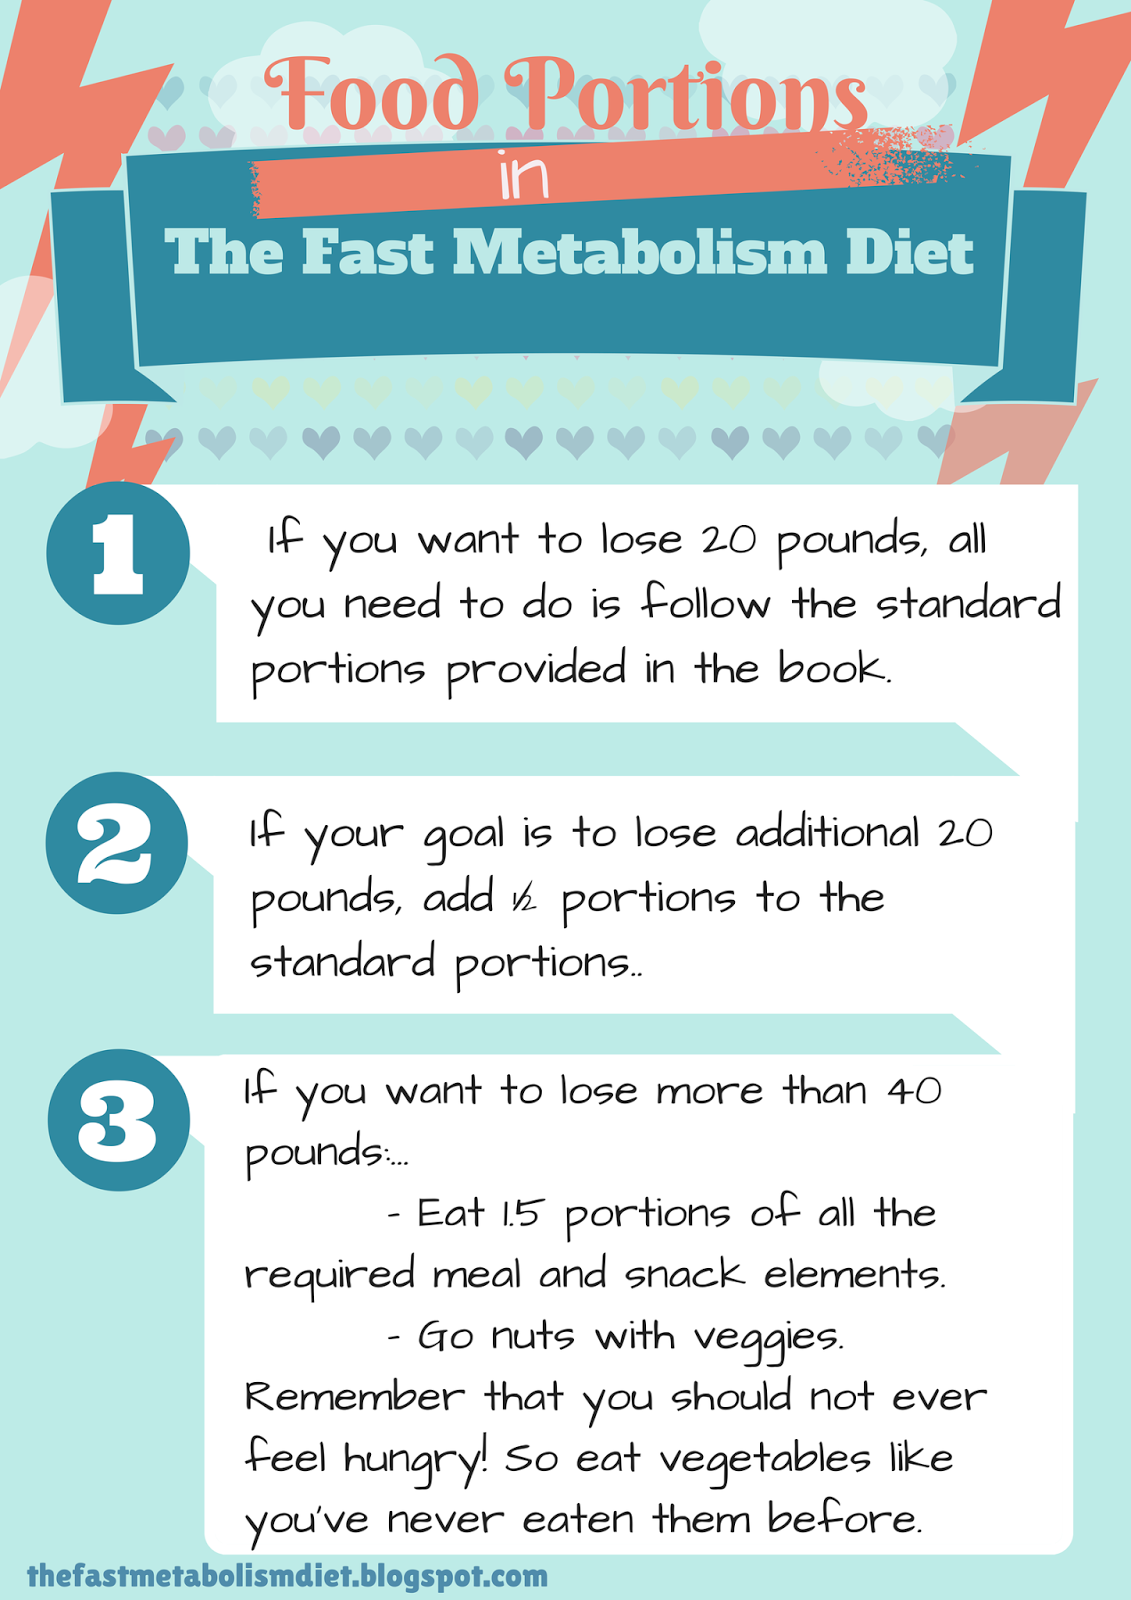 The Fast Metabolism Diet: Food portions in the Fast Metabolism Diet